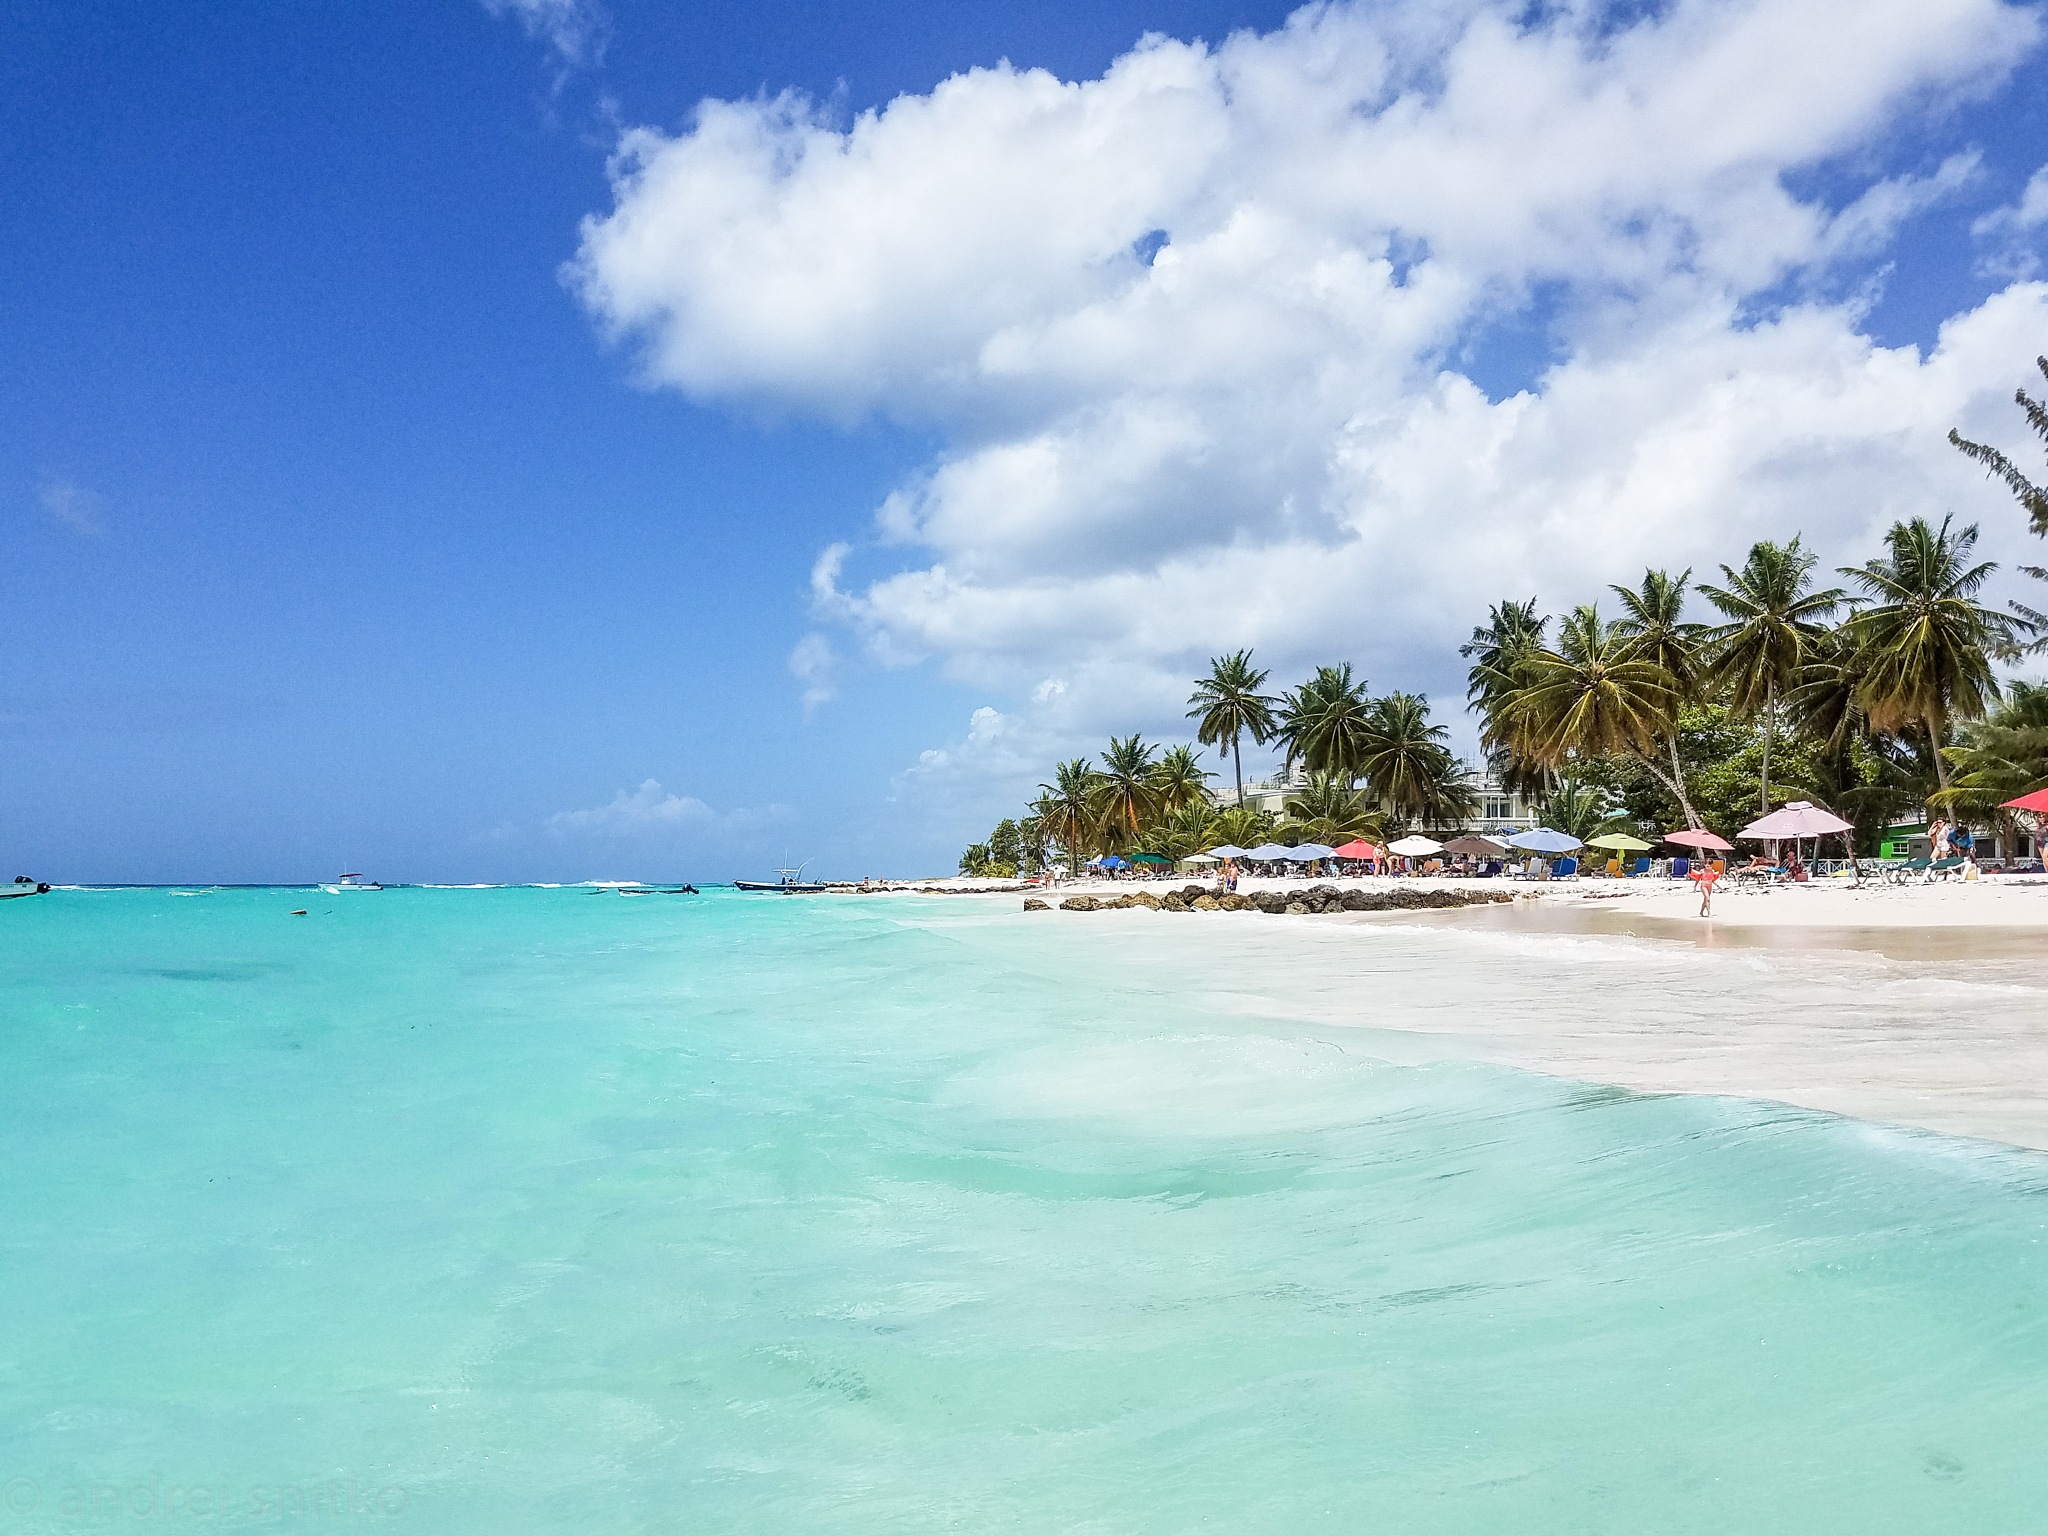 Worthing Beach, Barbados by Andrei Snitko